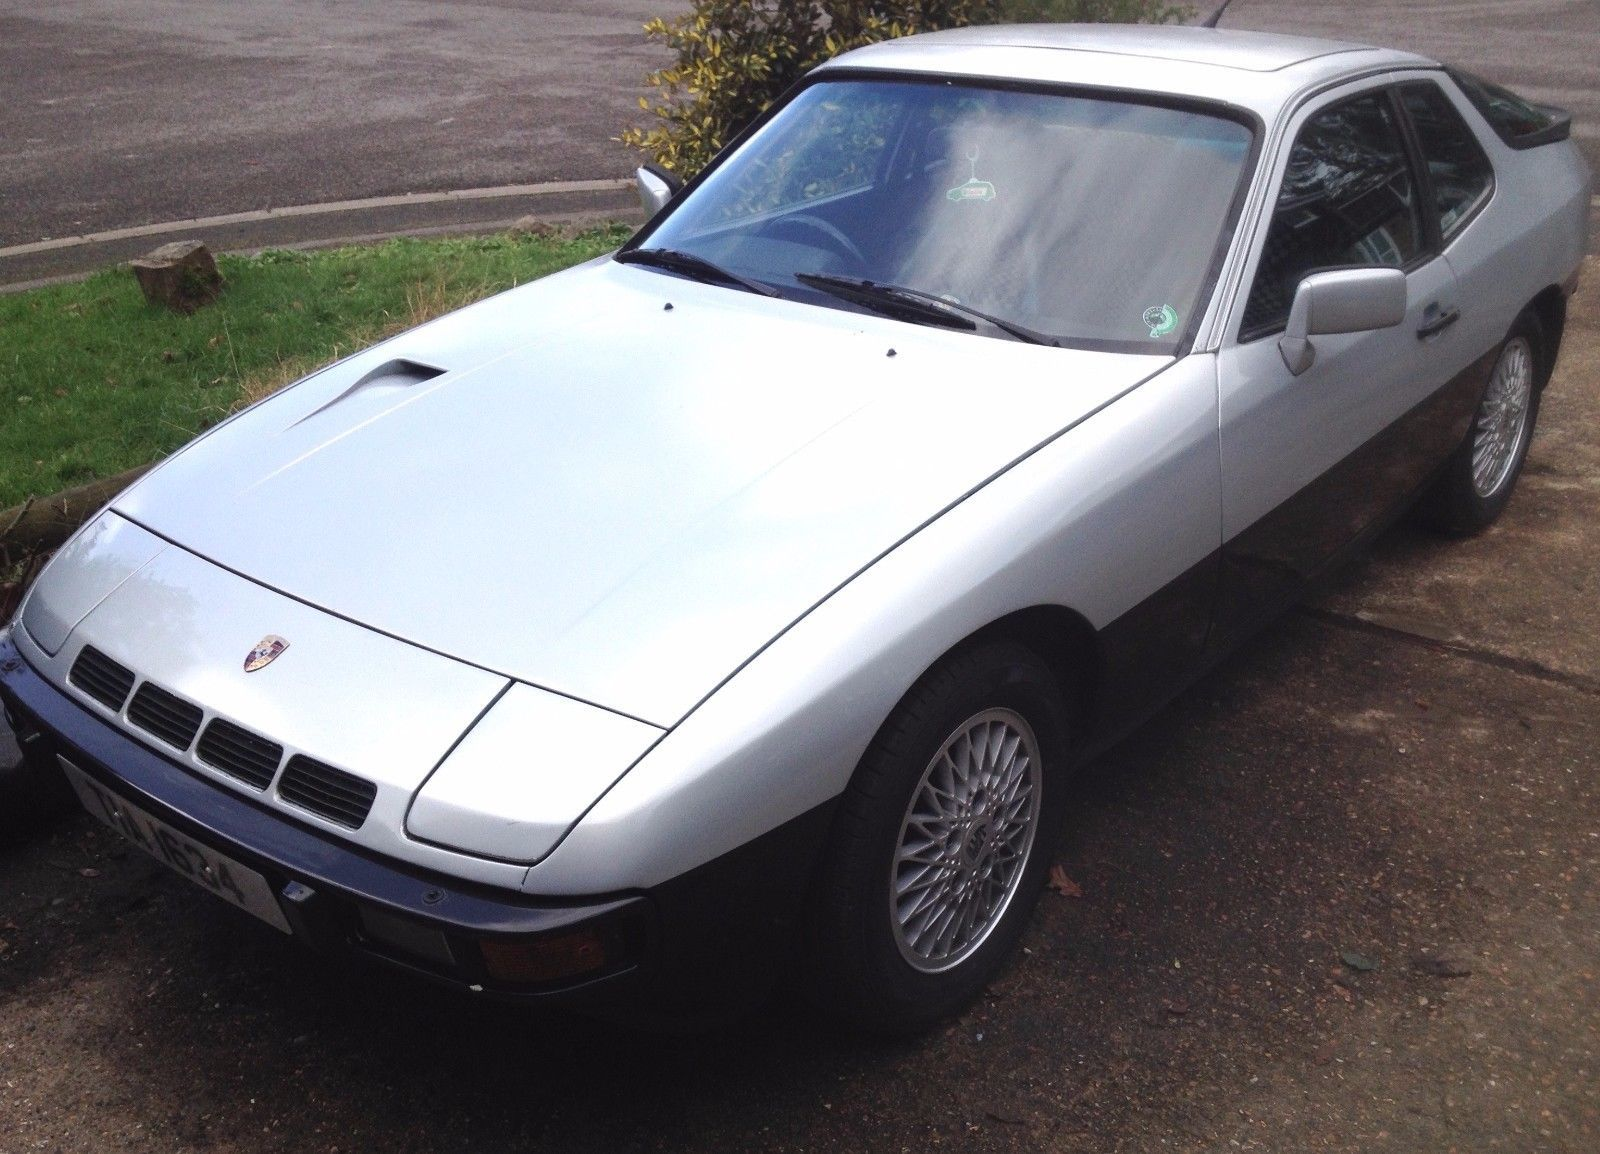 eBay: Porsche 924 TURBO, Porsche 931, Long MOT, used regularly ...